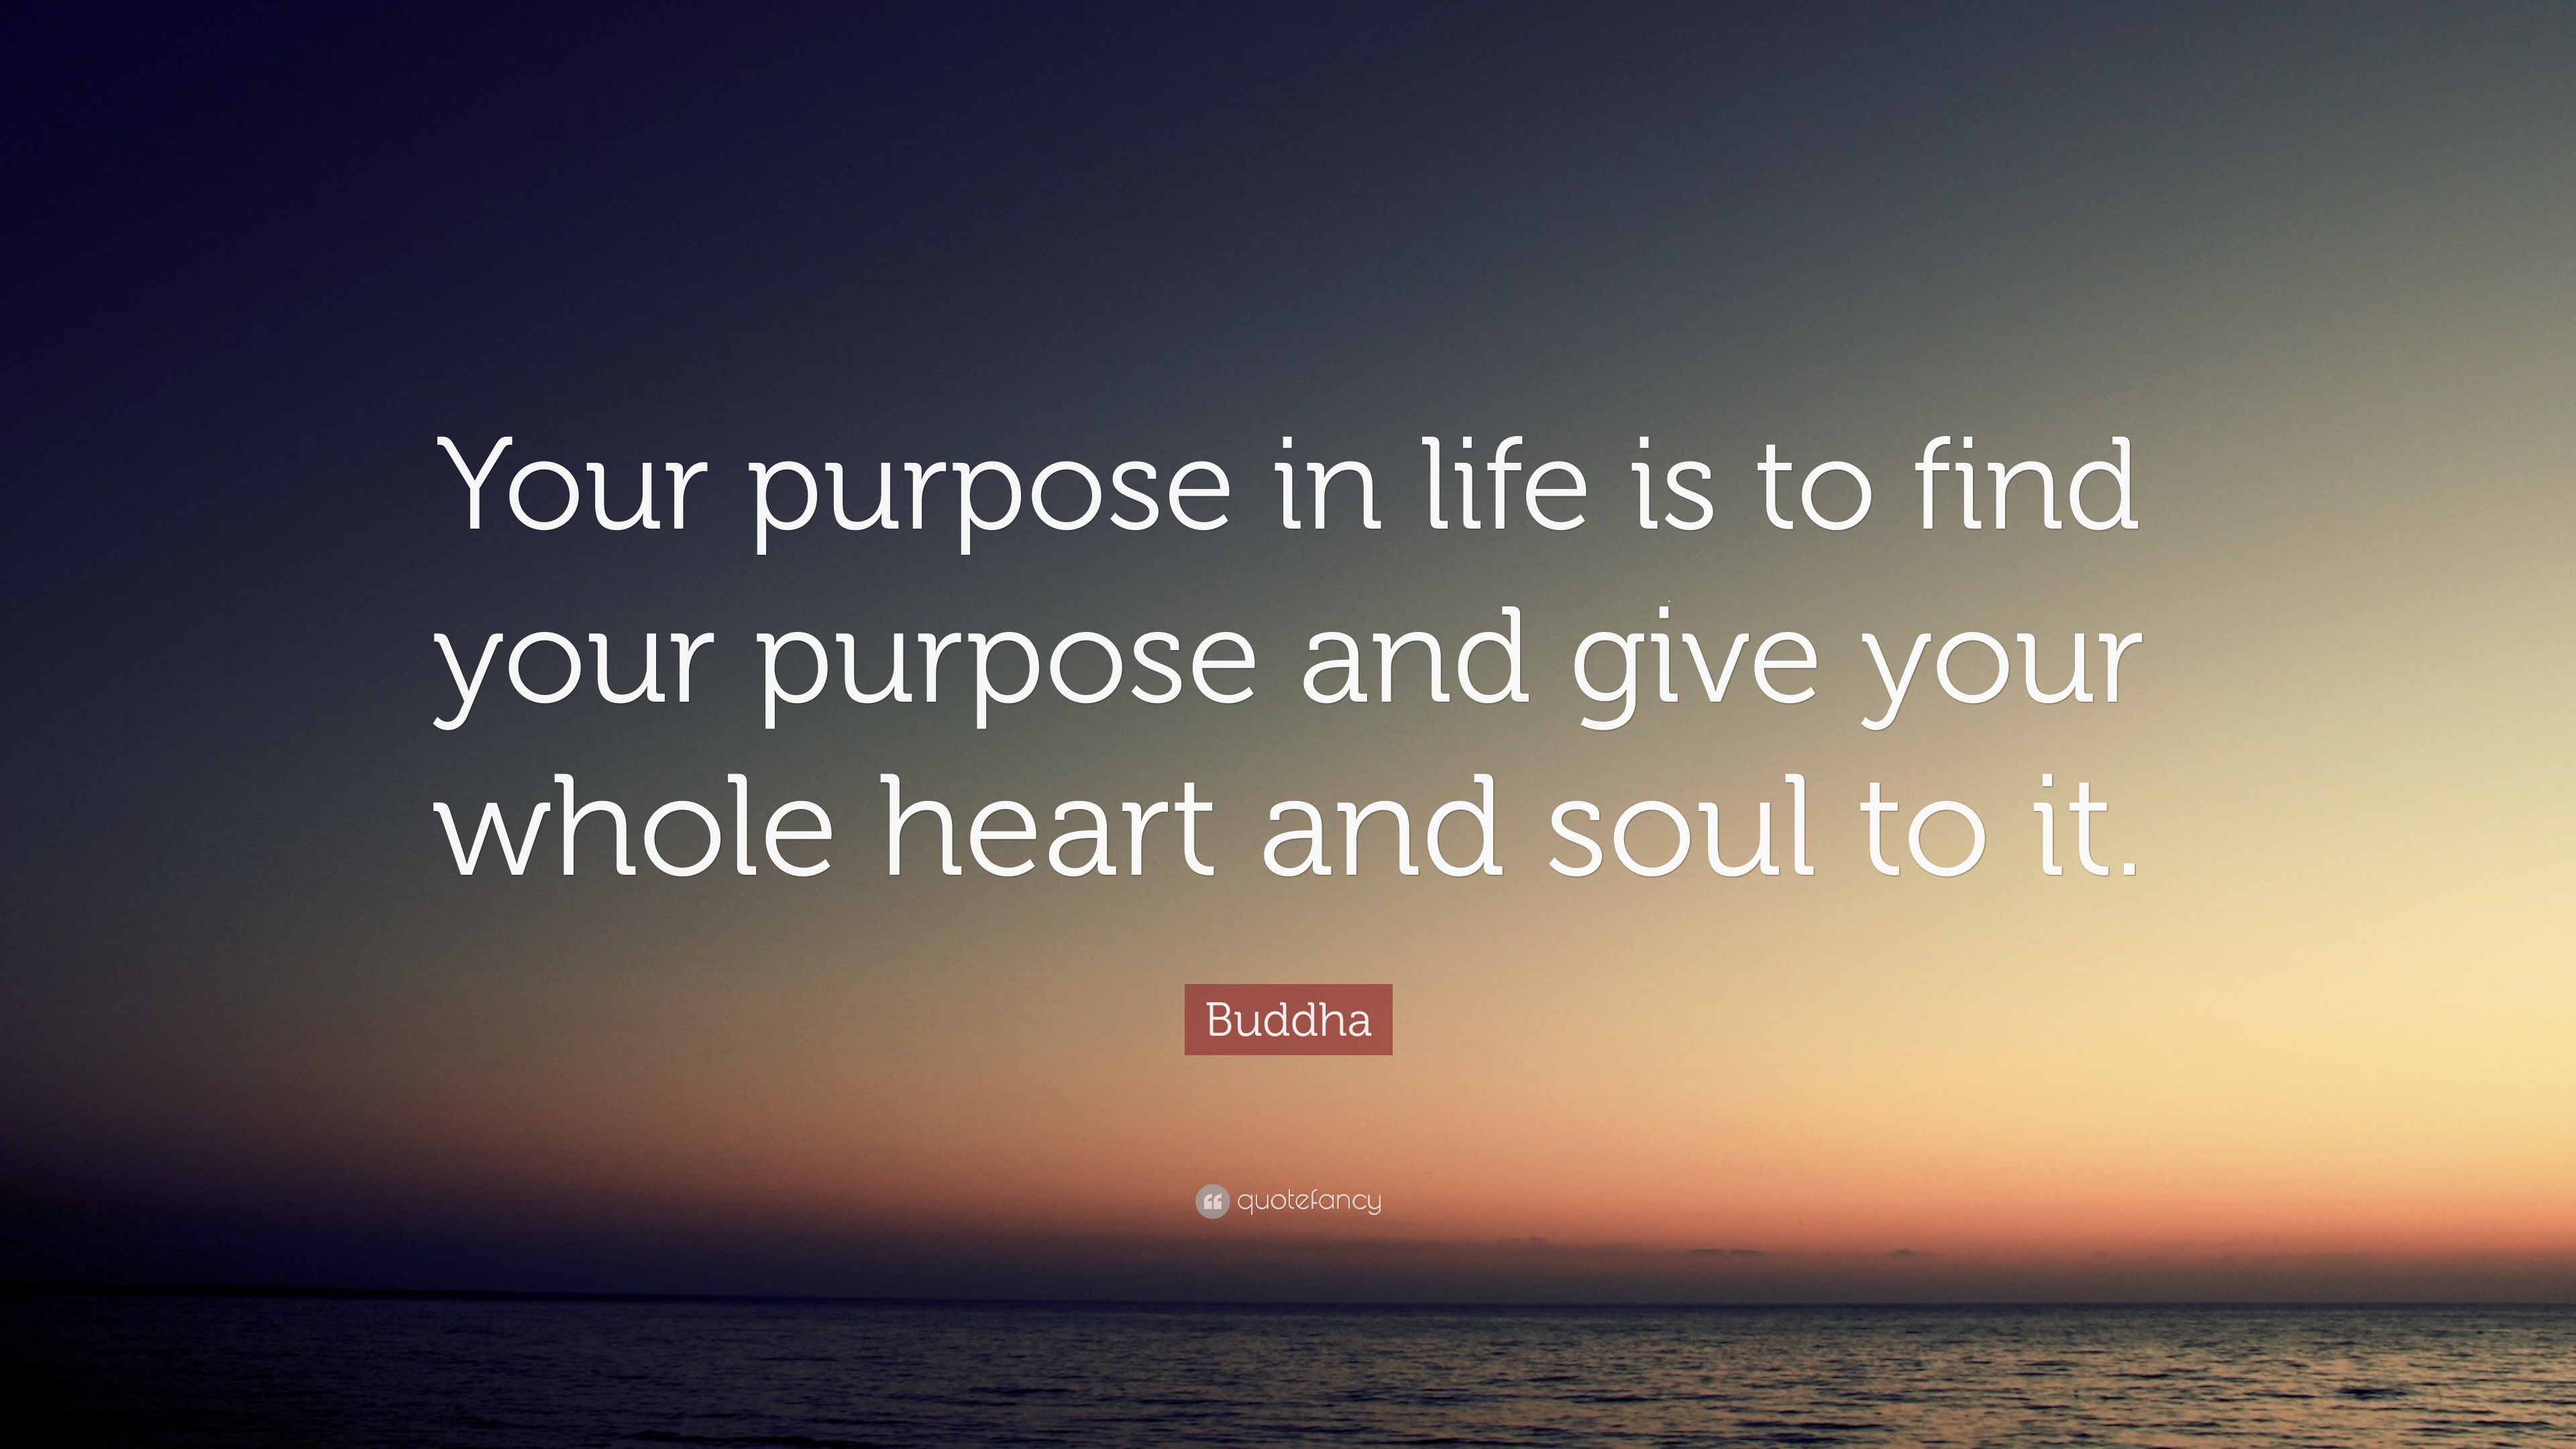 Buddha Quote Your Purpose In Life Is To Find Your Purpose And Give